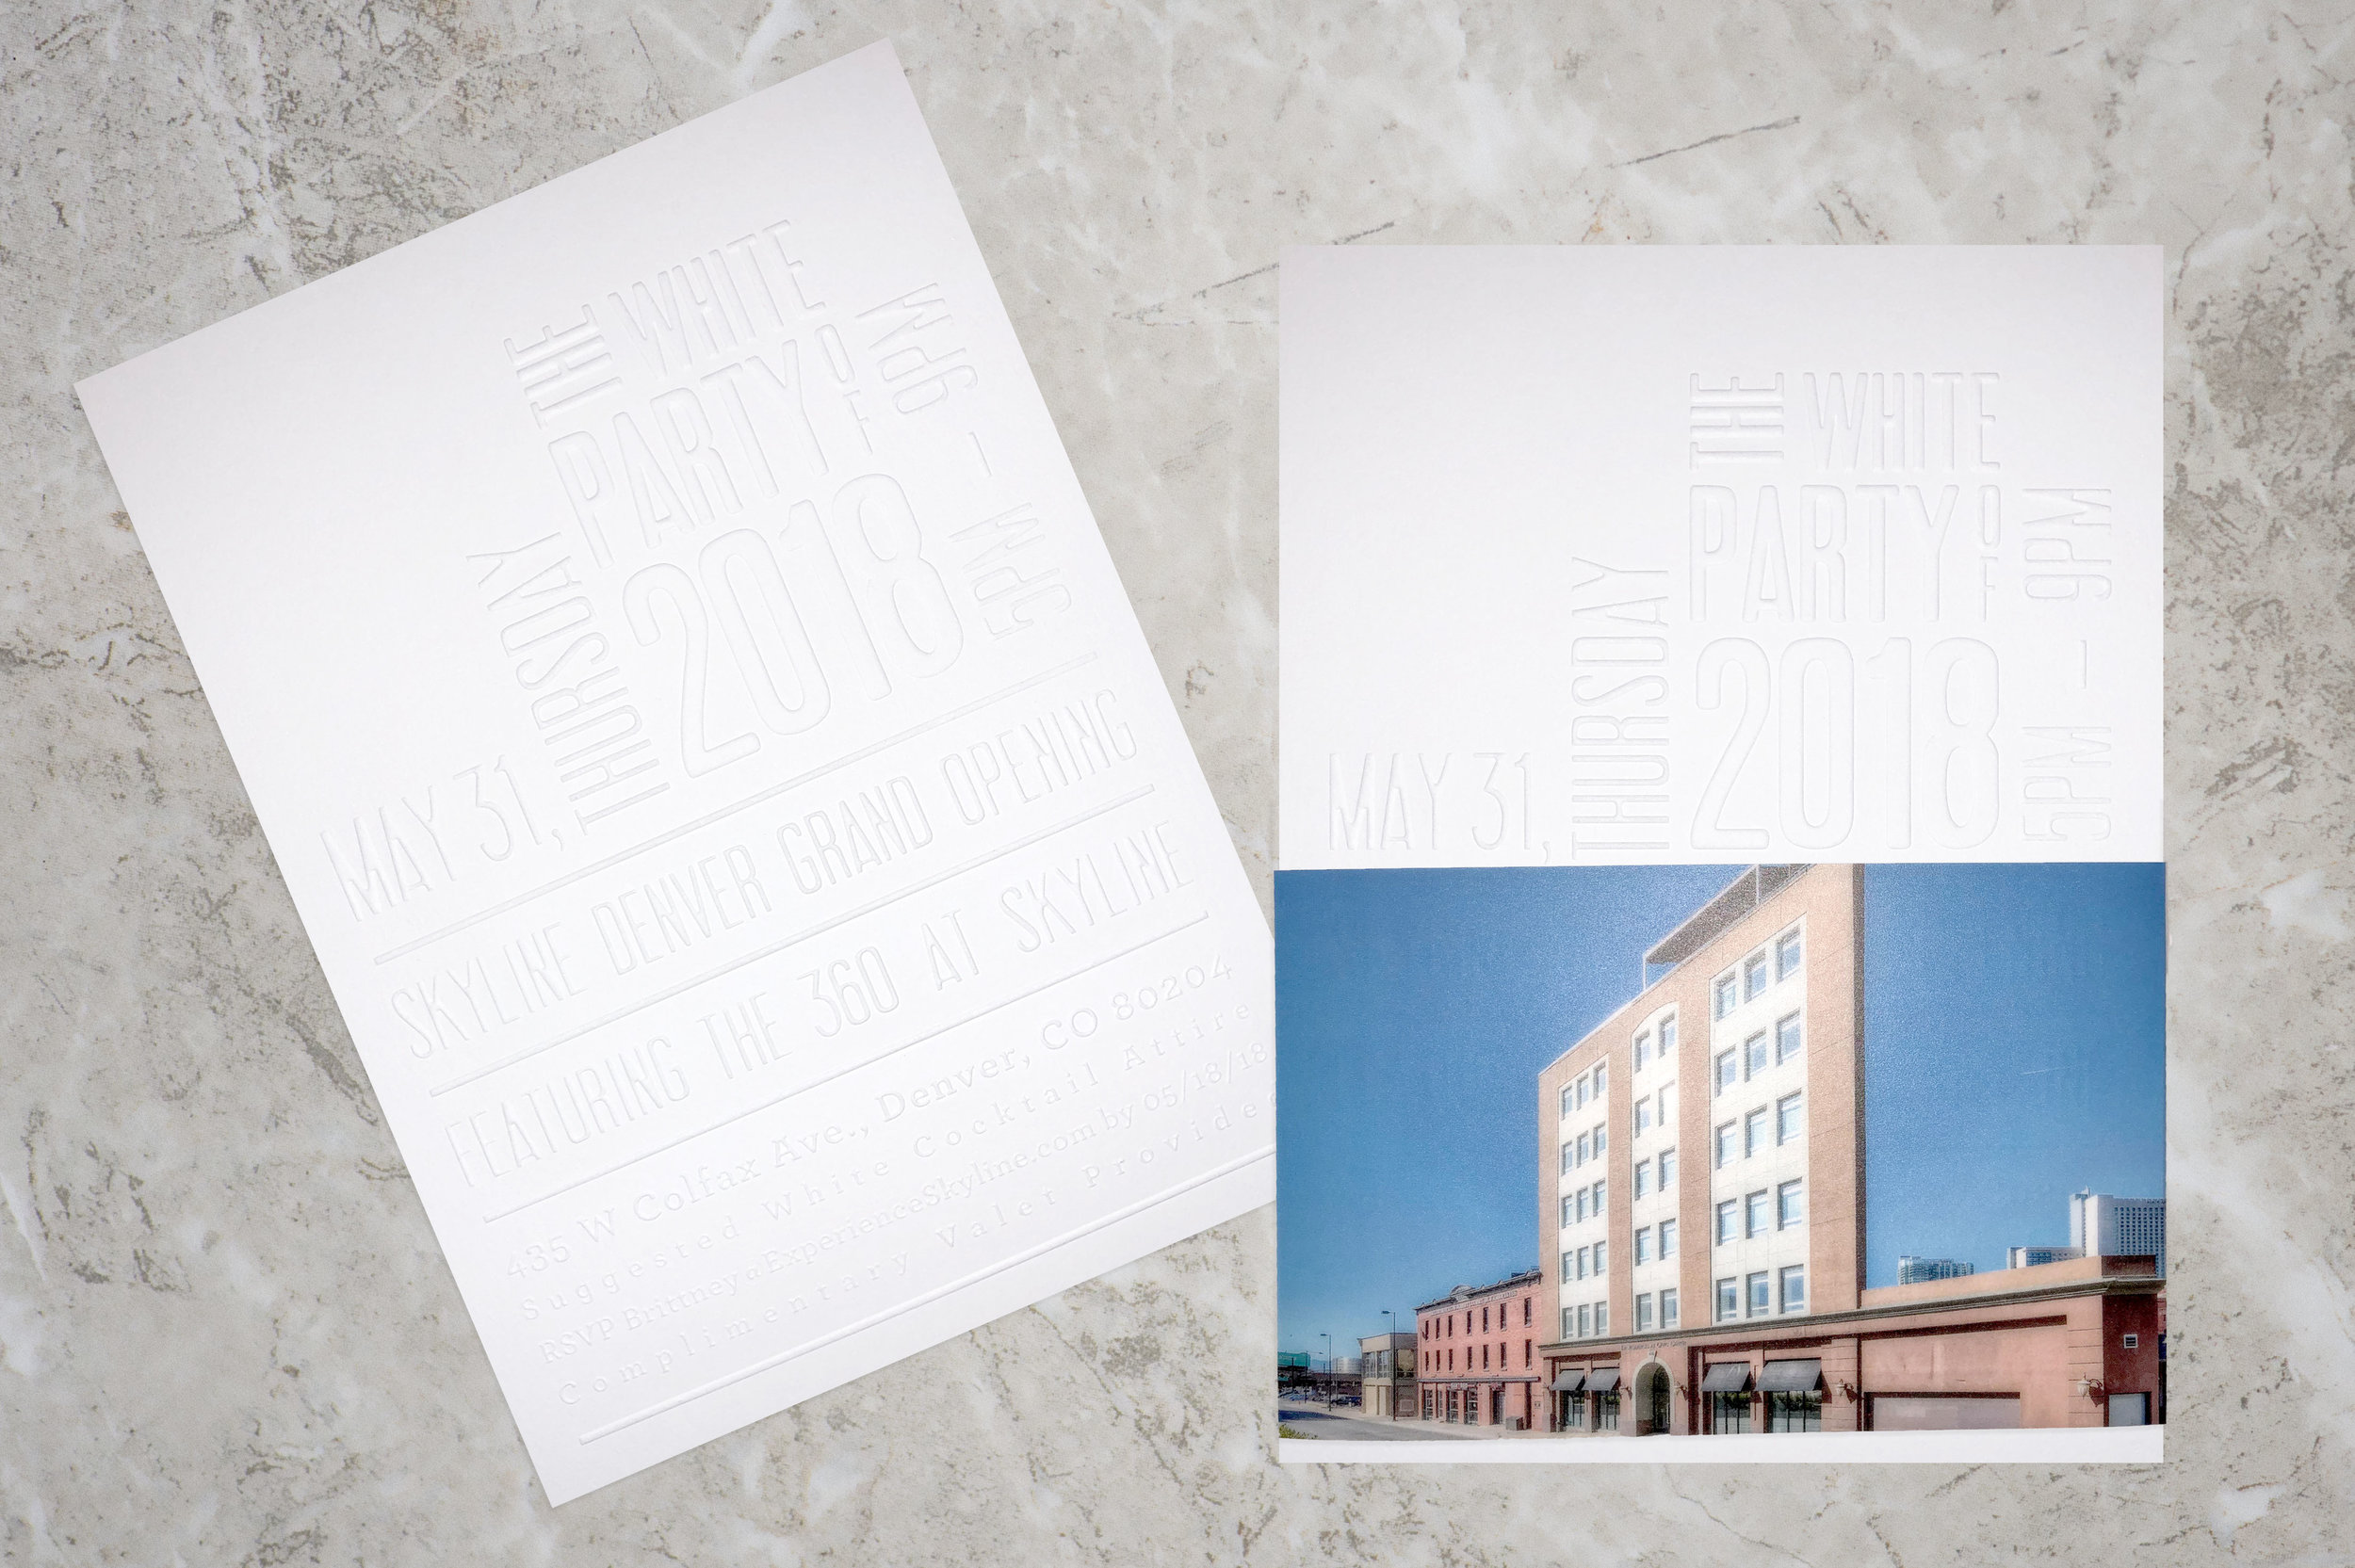 The White Party of 2018 Invitations for Skyline Denver Grand Opening were blind embossed on Crane's Lettra 110# fluorescent white 100% cotton paper. Vellum wraps around band was digitally printed.